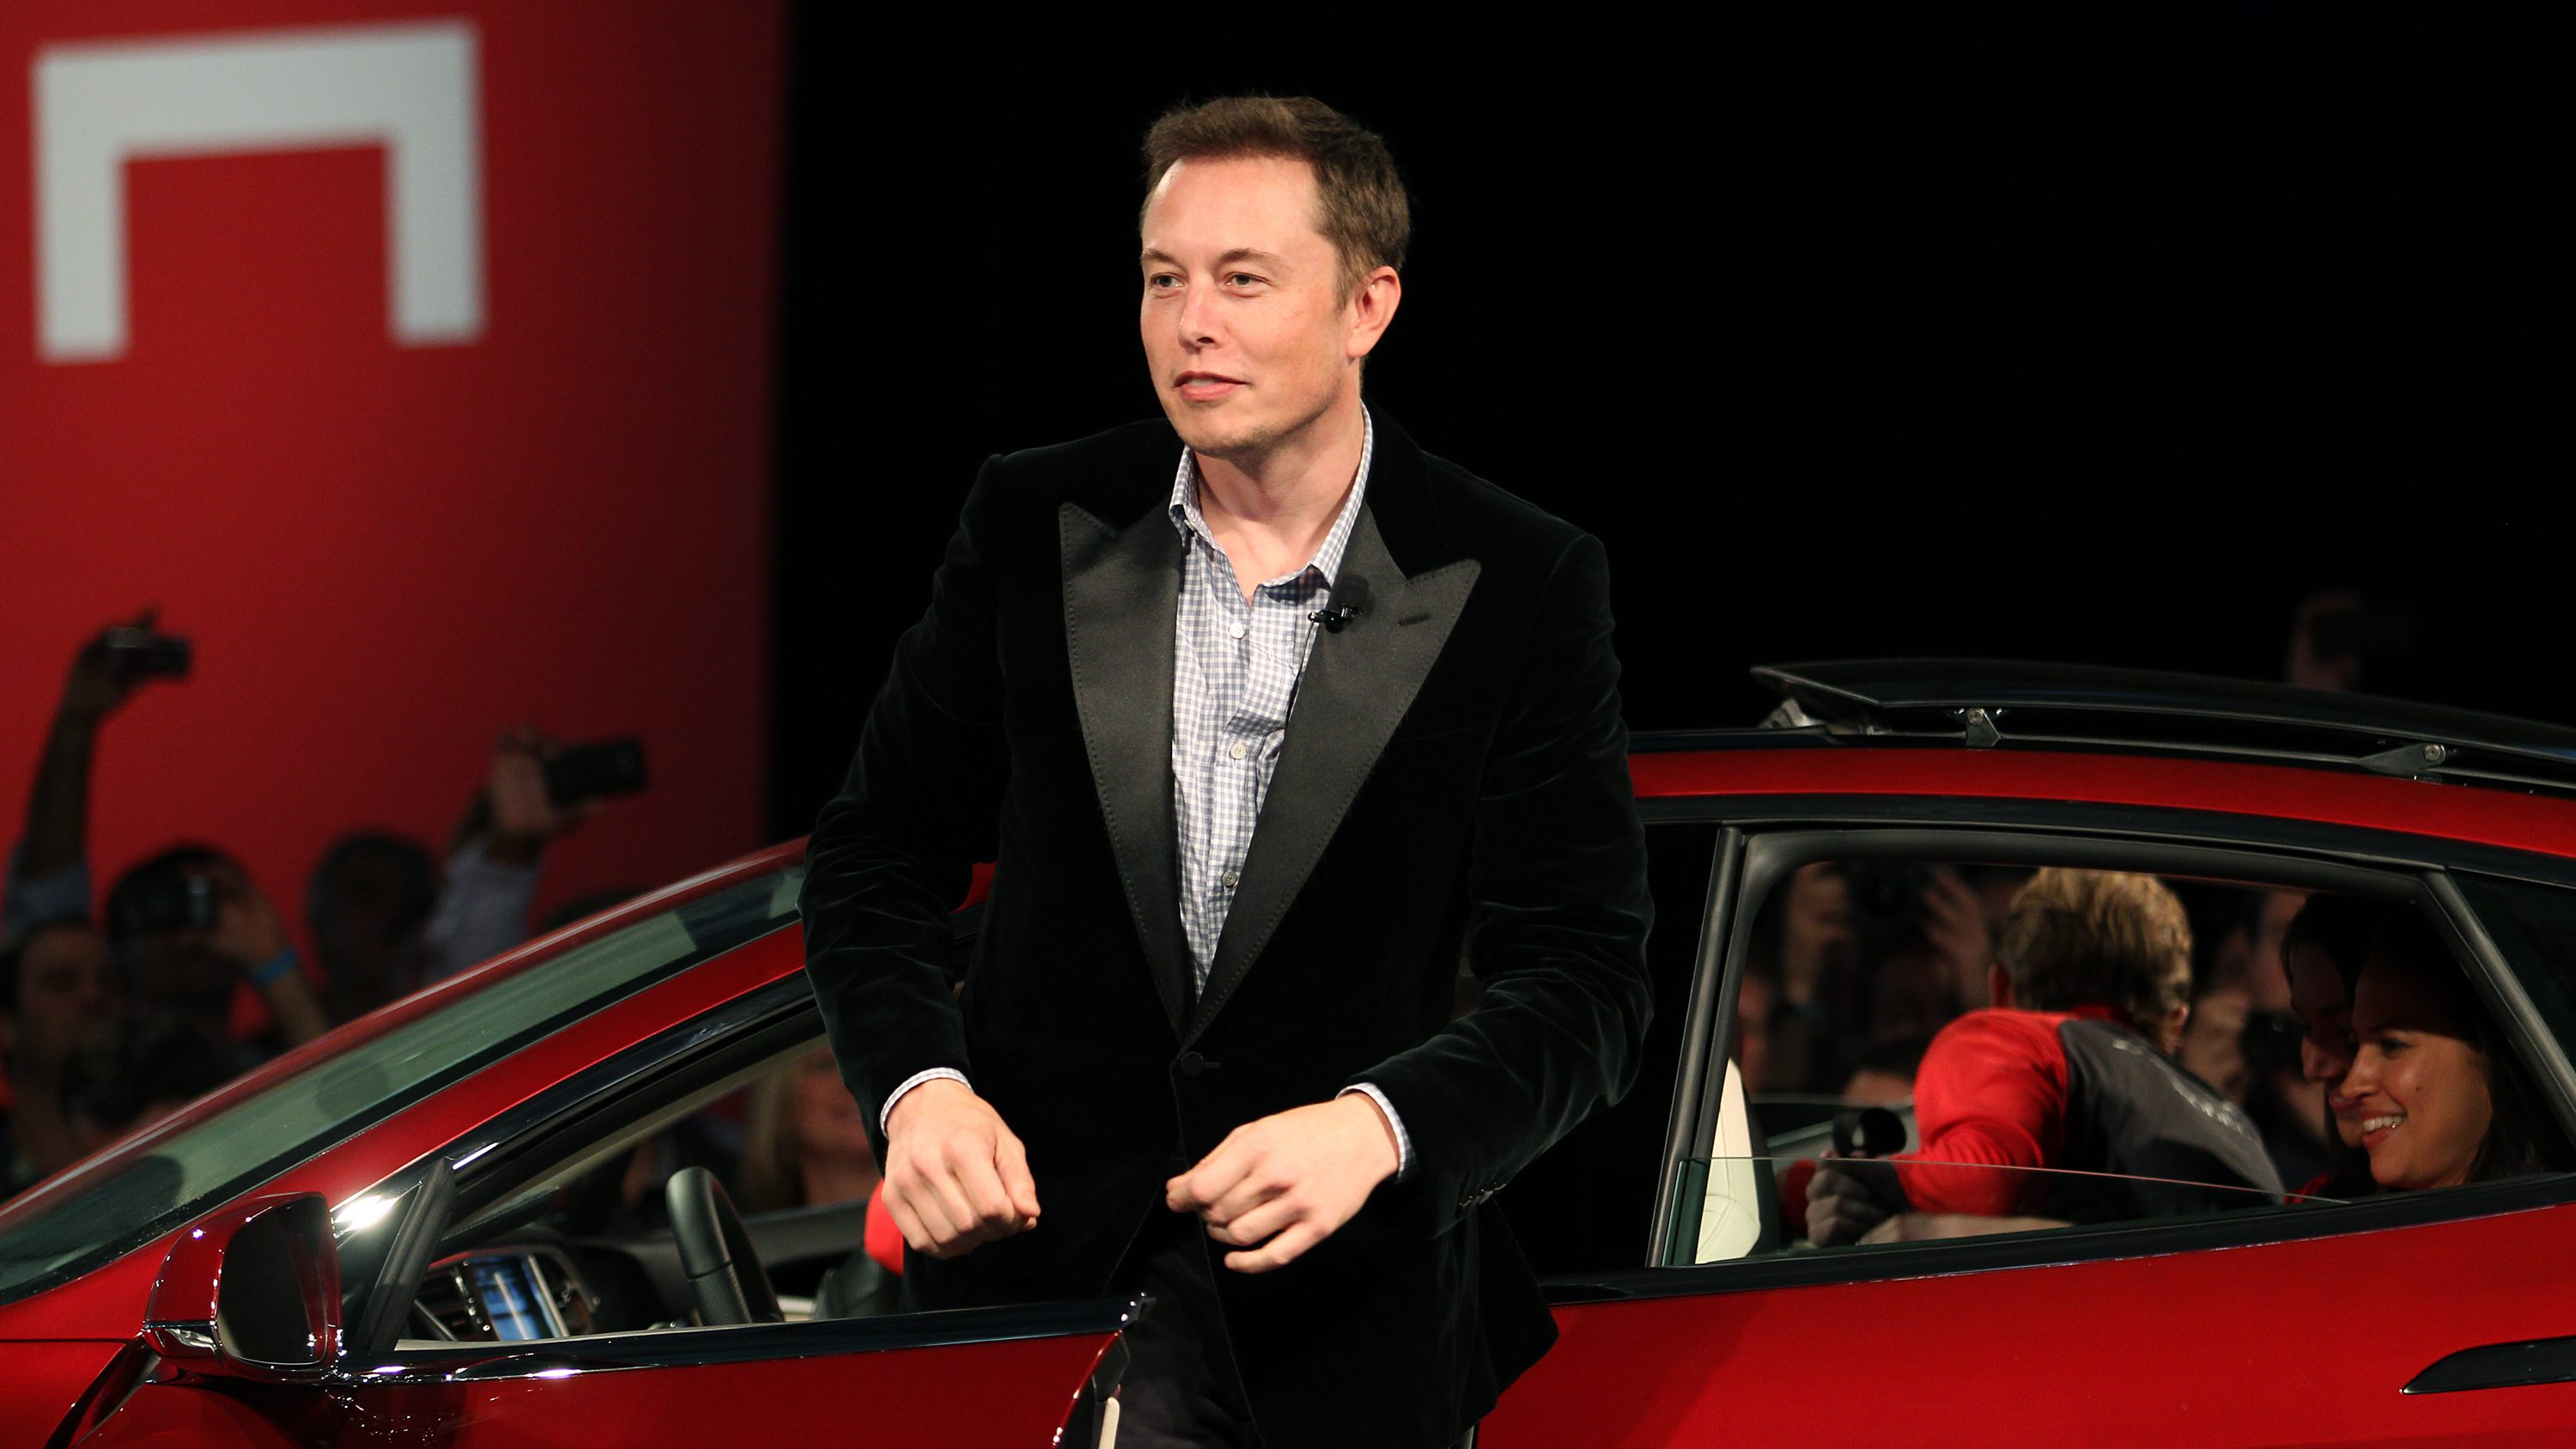 Tesla Motors CEO Elon Musk alights from a Model S, the company's first full-size electric sedan, during an event held at the Tesla factory in Fremont, California October 1, 2011. Tesla is hanging much of its future on the Model S, its first sedan, which it hopes to start delivering to customers next year.  REUTERS/Stephen Lam  (UNITED STATES - Tags: BUSINESS TRANSPORT SCIENCE TECHNOLOGY) - RTR2S40T